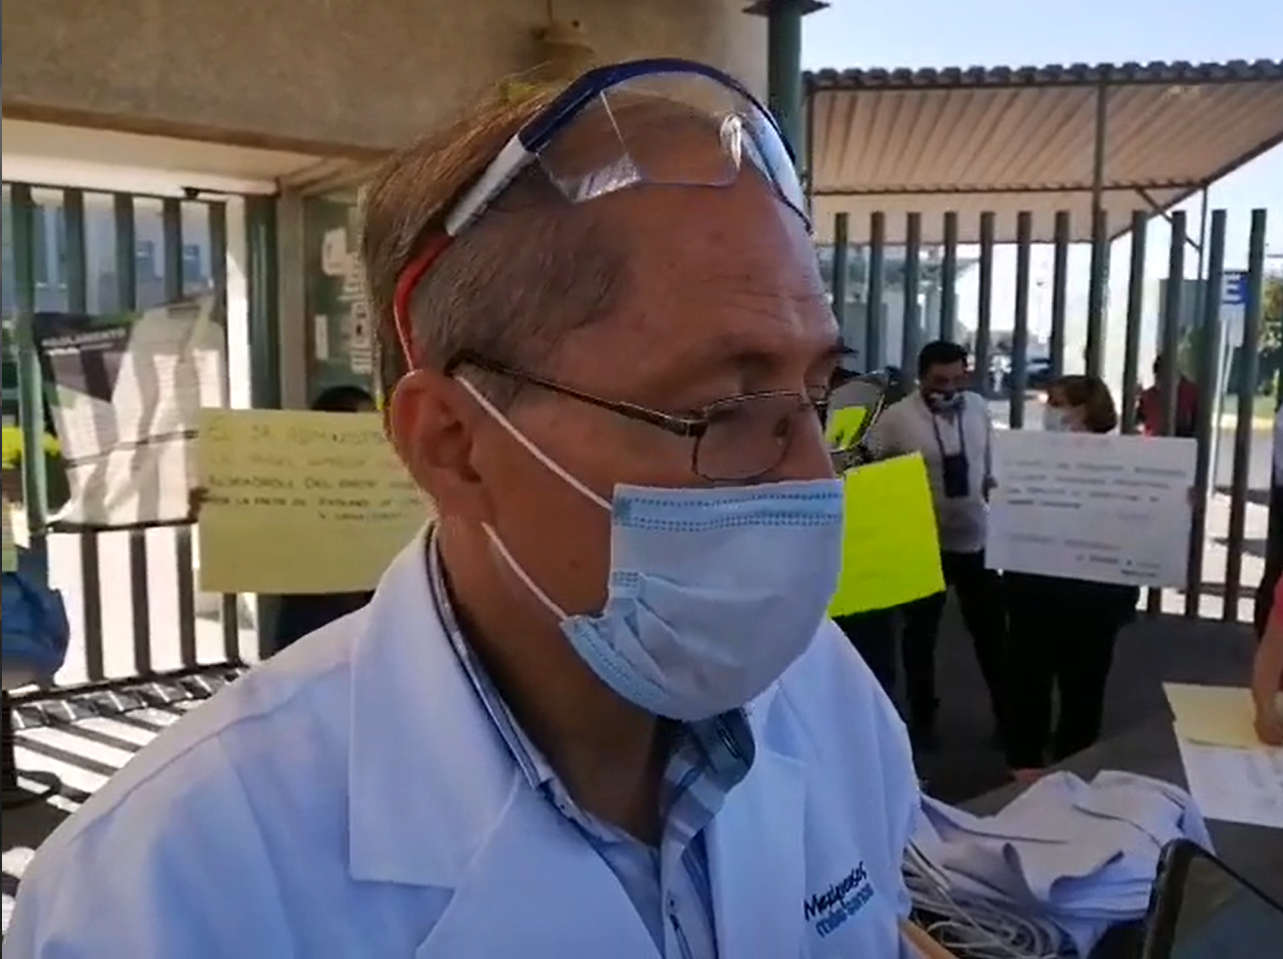 VIDEO || Protestan por insumos incompletos en Hospital Adolfo López Mateos, Toluca